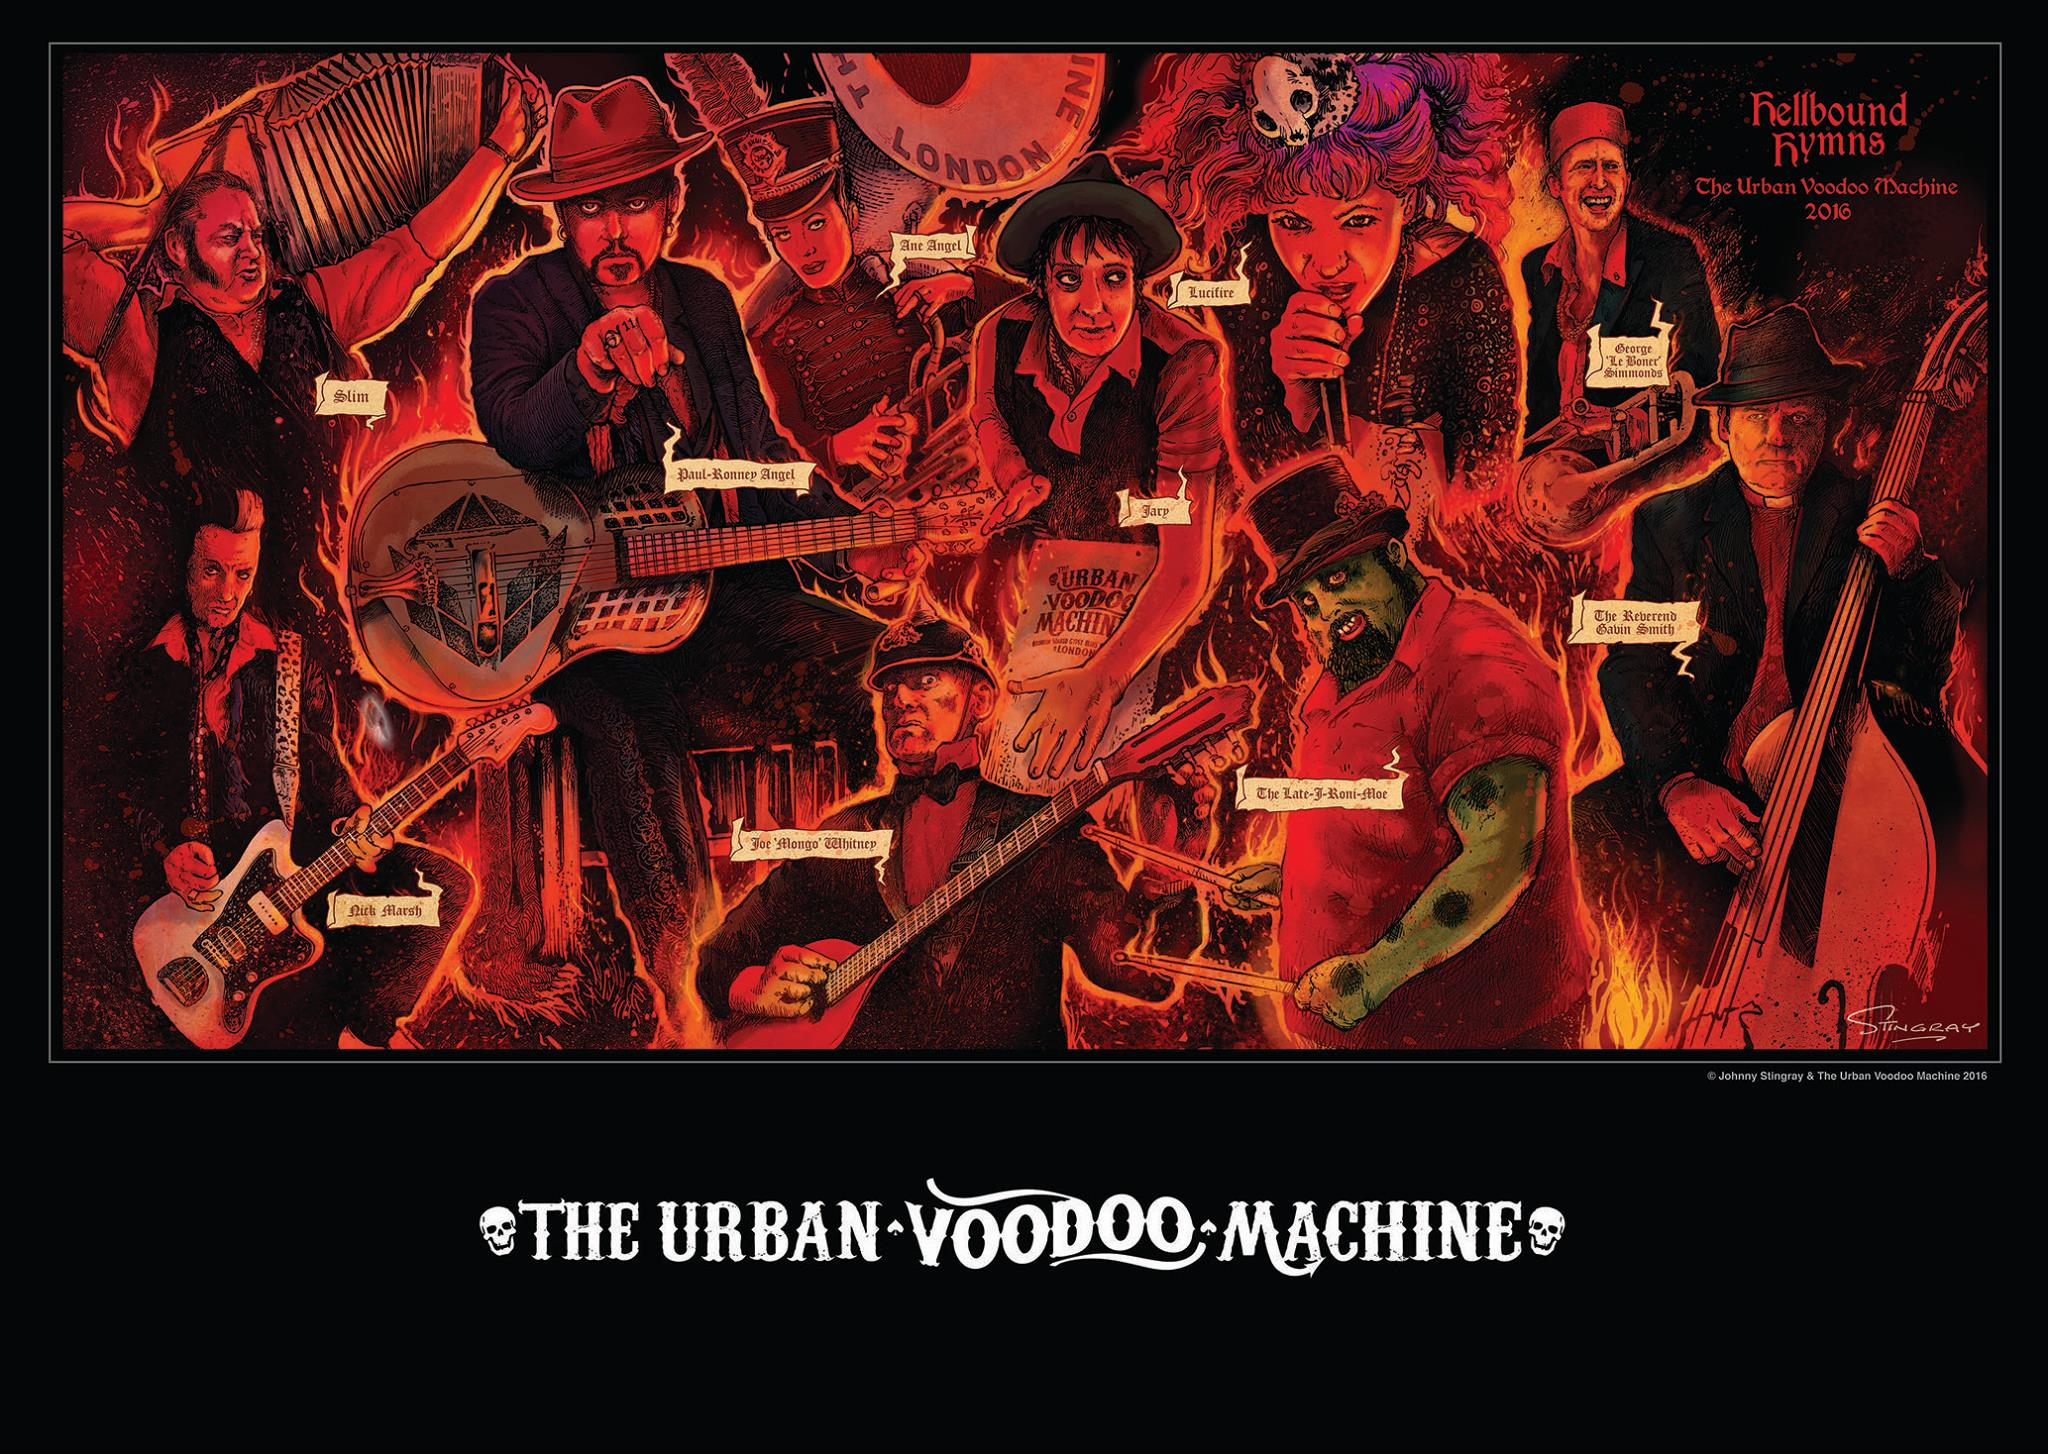 Urban Voodoo Machine